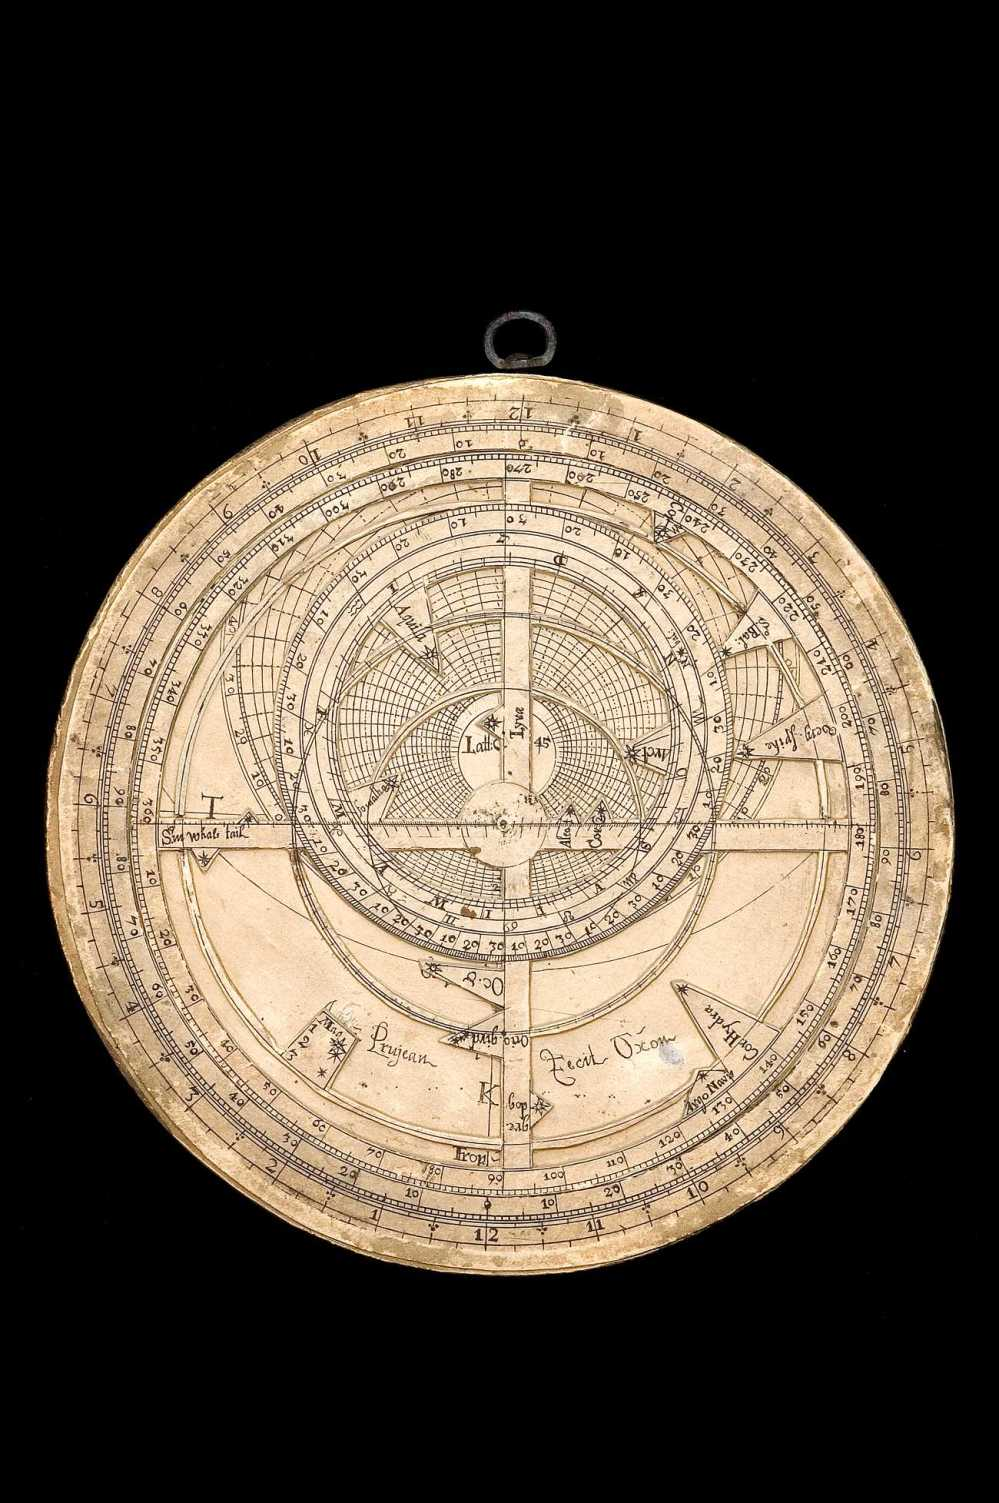 preview image for Paper Astrolabe, by John Prujean, Oxford, c. 1680